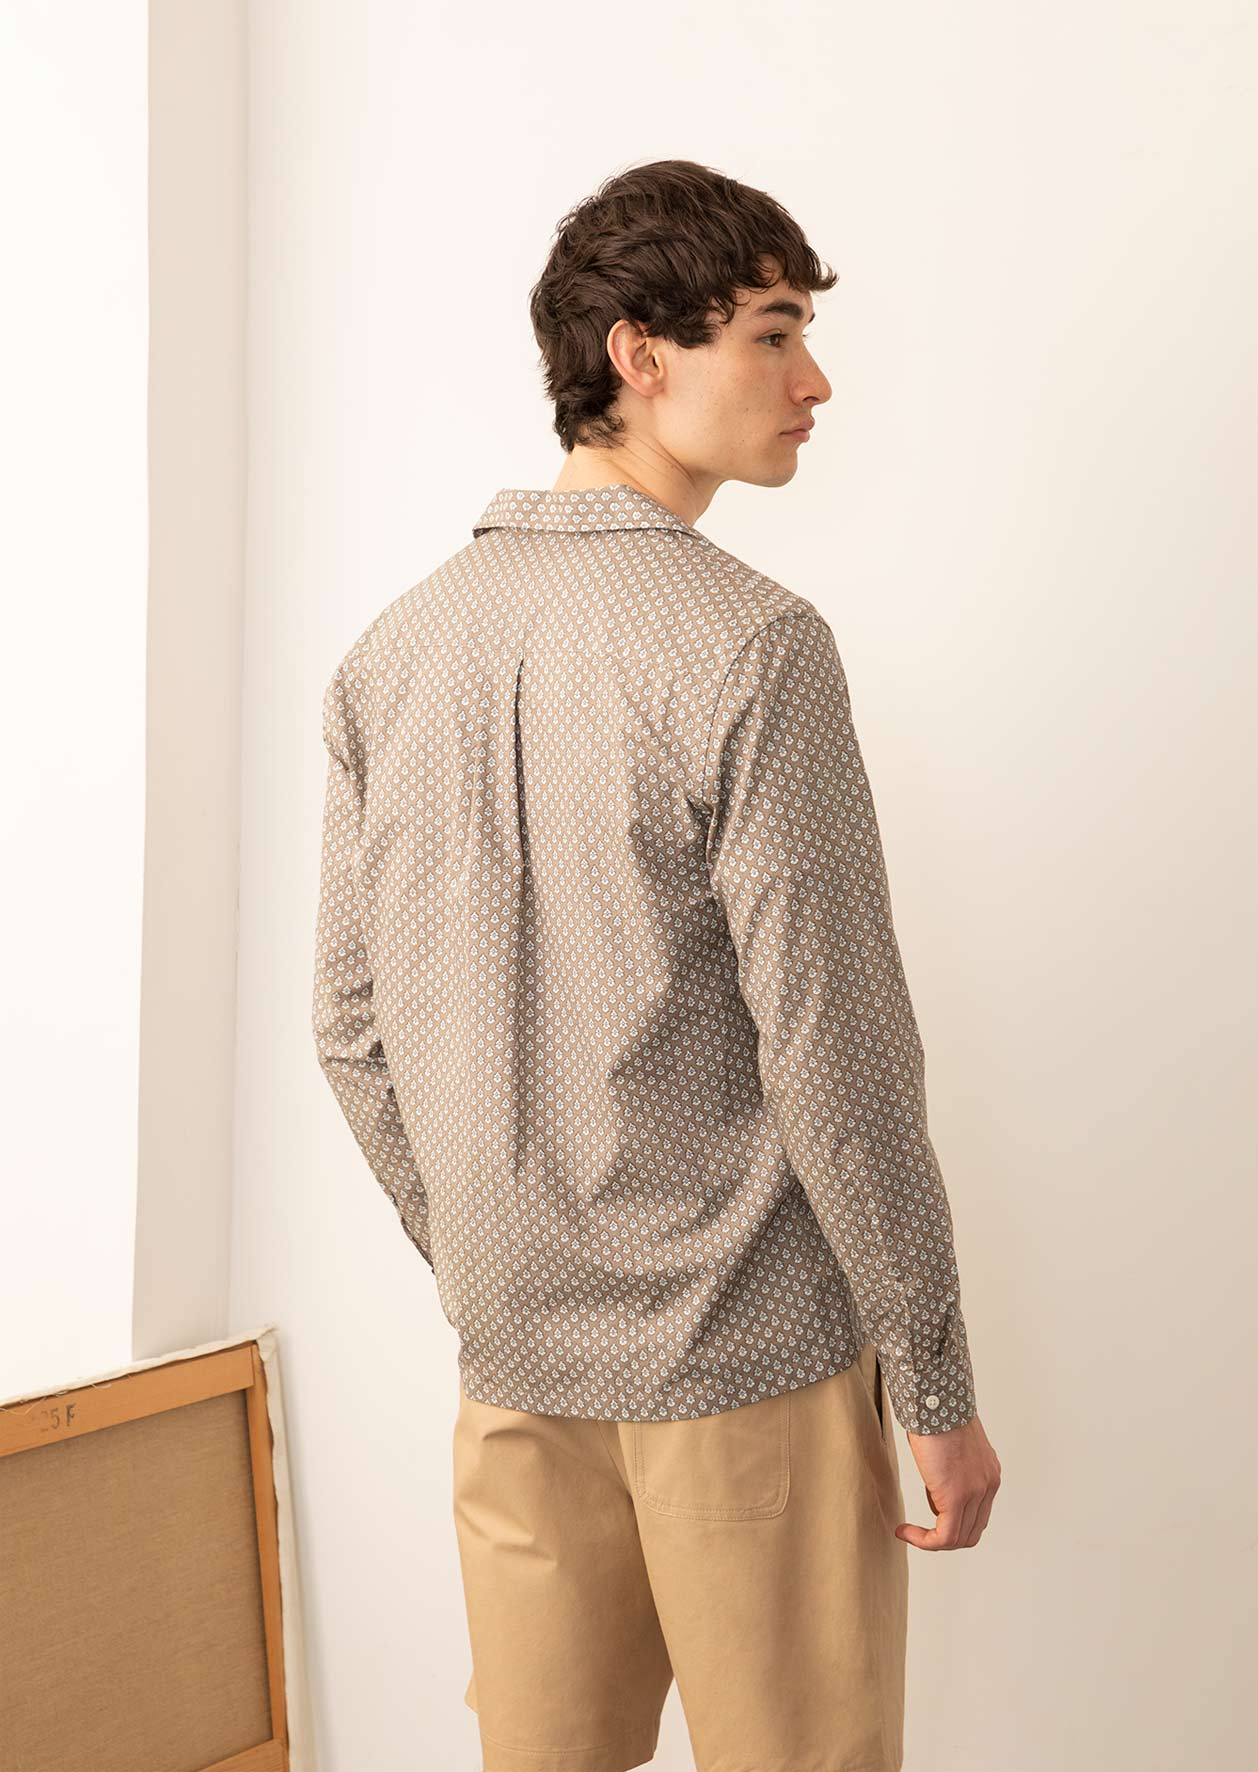 De Bonne Facture - Camp collar long sleeve shirt - Provencal print cotton voile - Taupe